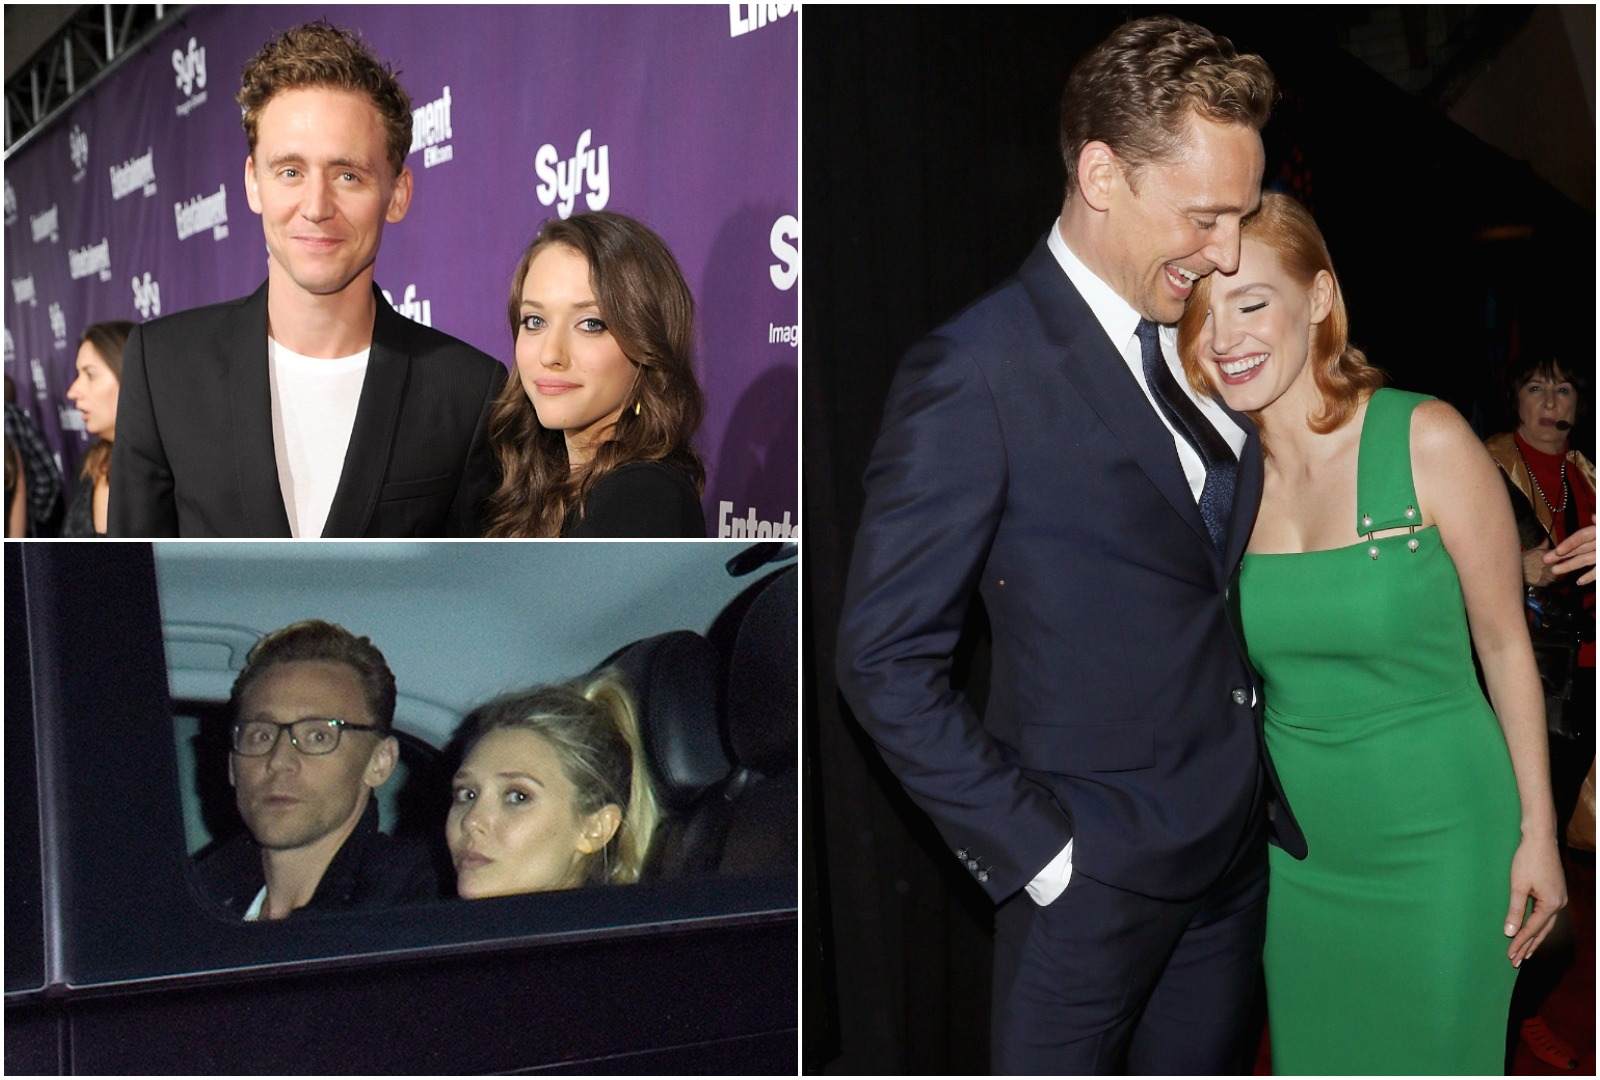 Tom Hiddleston romanced a fair few famous women before Taylor Swift